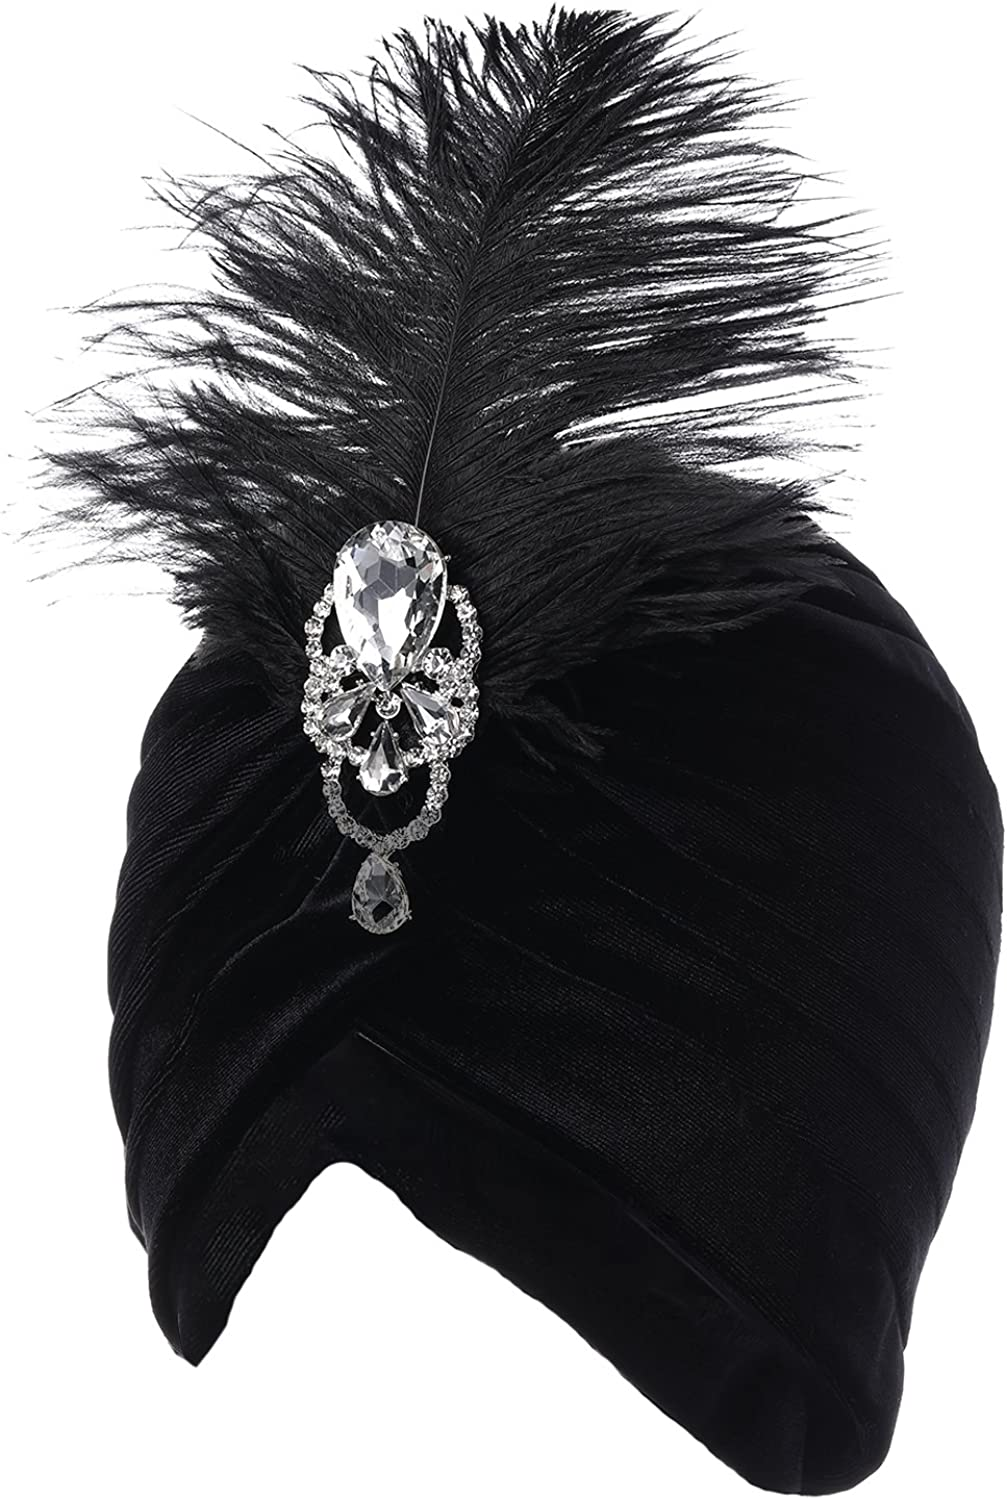 1920s Headband, Headpiece & Hair Accessory Styles ArtiDeco Ruffle Turban Hat for Women Feather Turban Hat with Detachable Crystal Brooch Headwraps Knit Pleated Turban Hat Vintage £10.99 AT vintagedancer.com